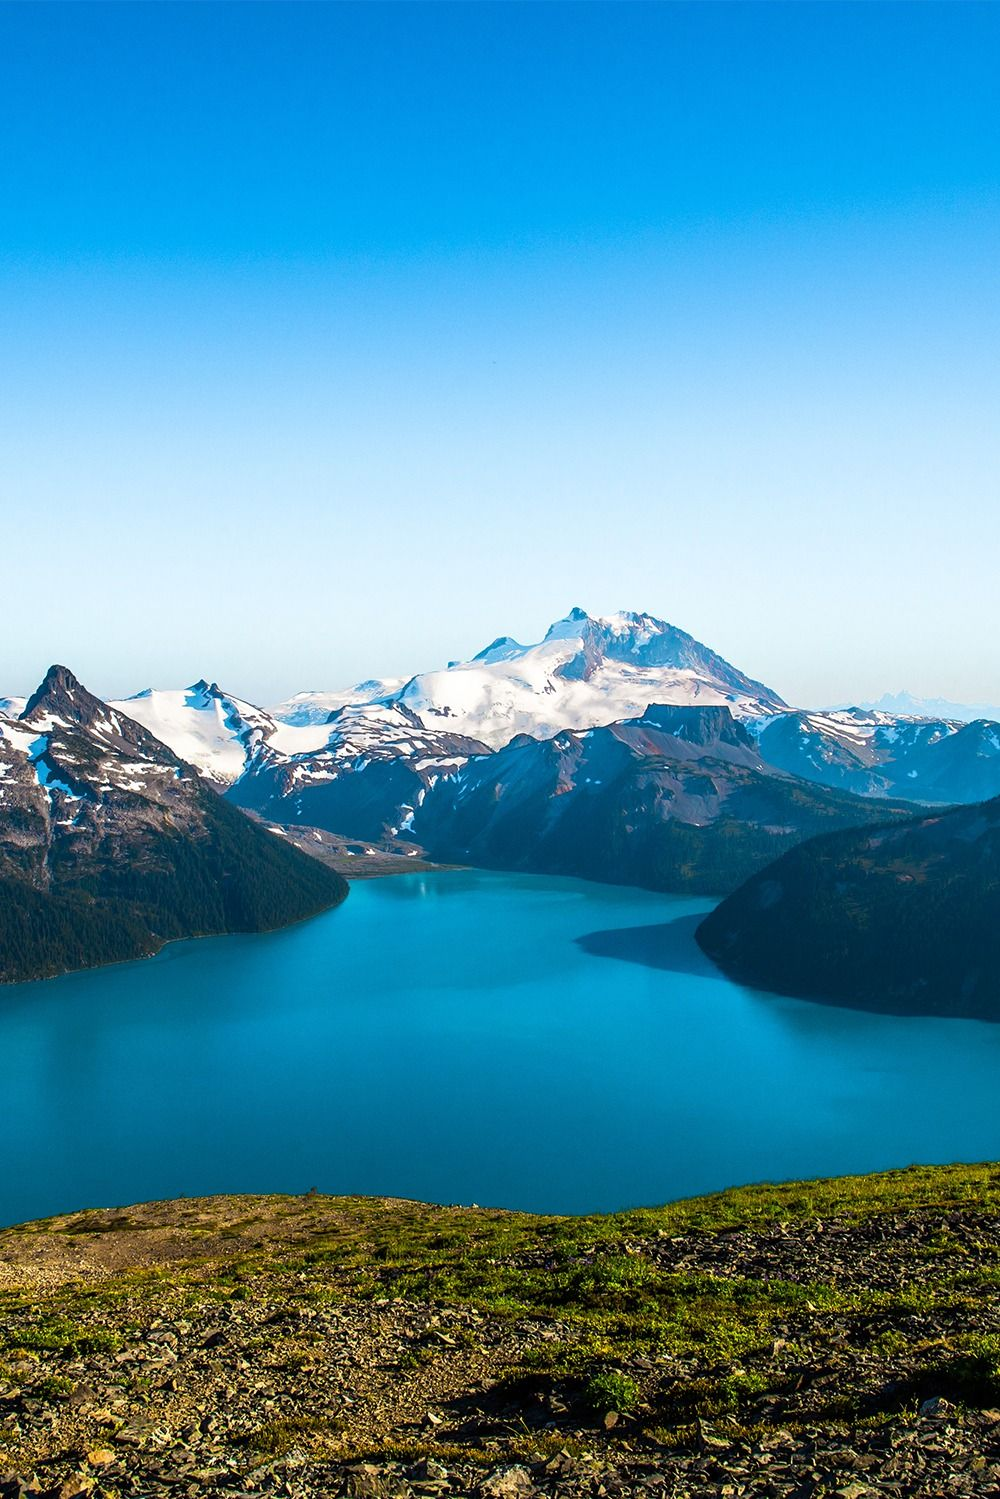 Love mountains, lakes & wildlife? There's an adventure in Canada with your name on it ...